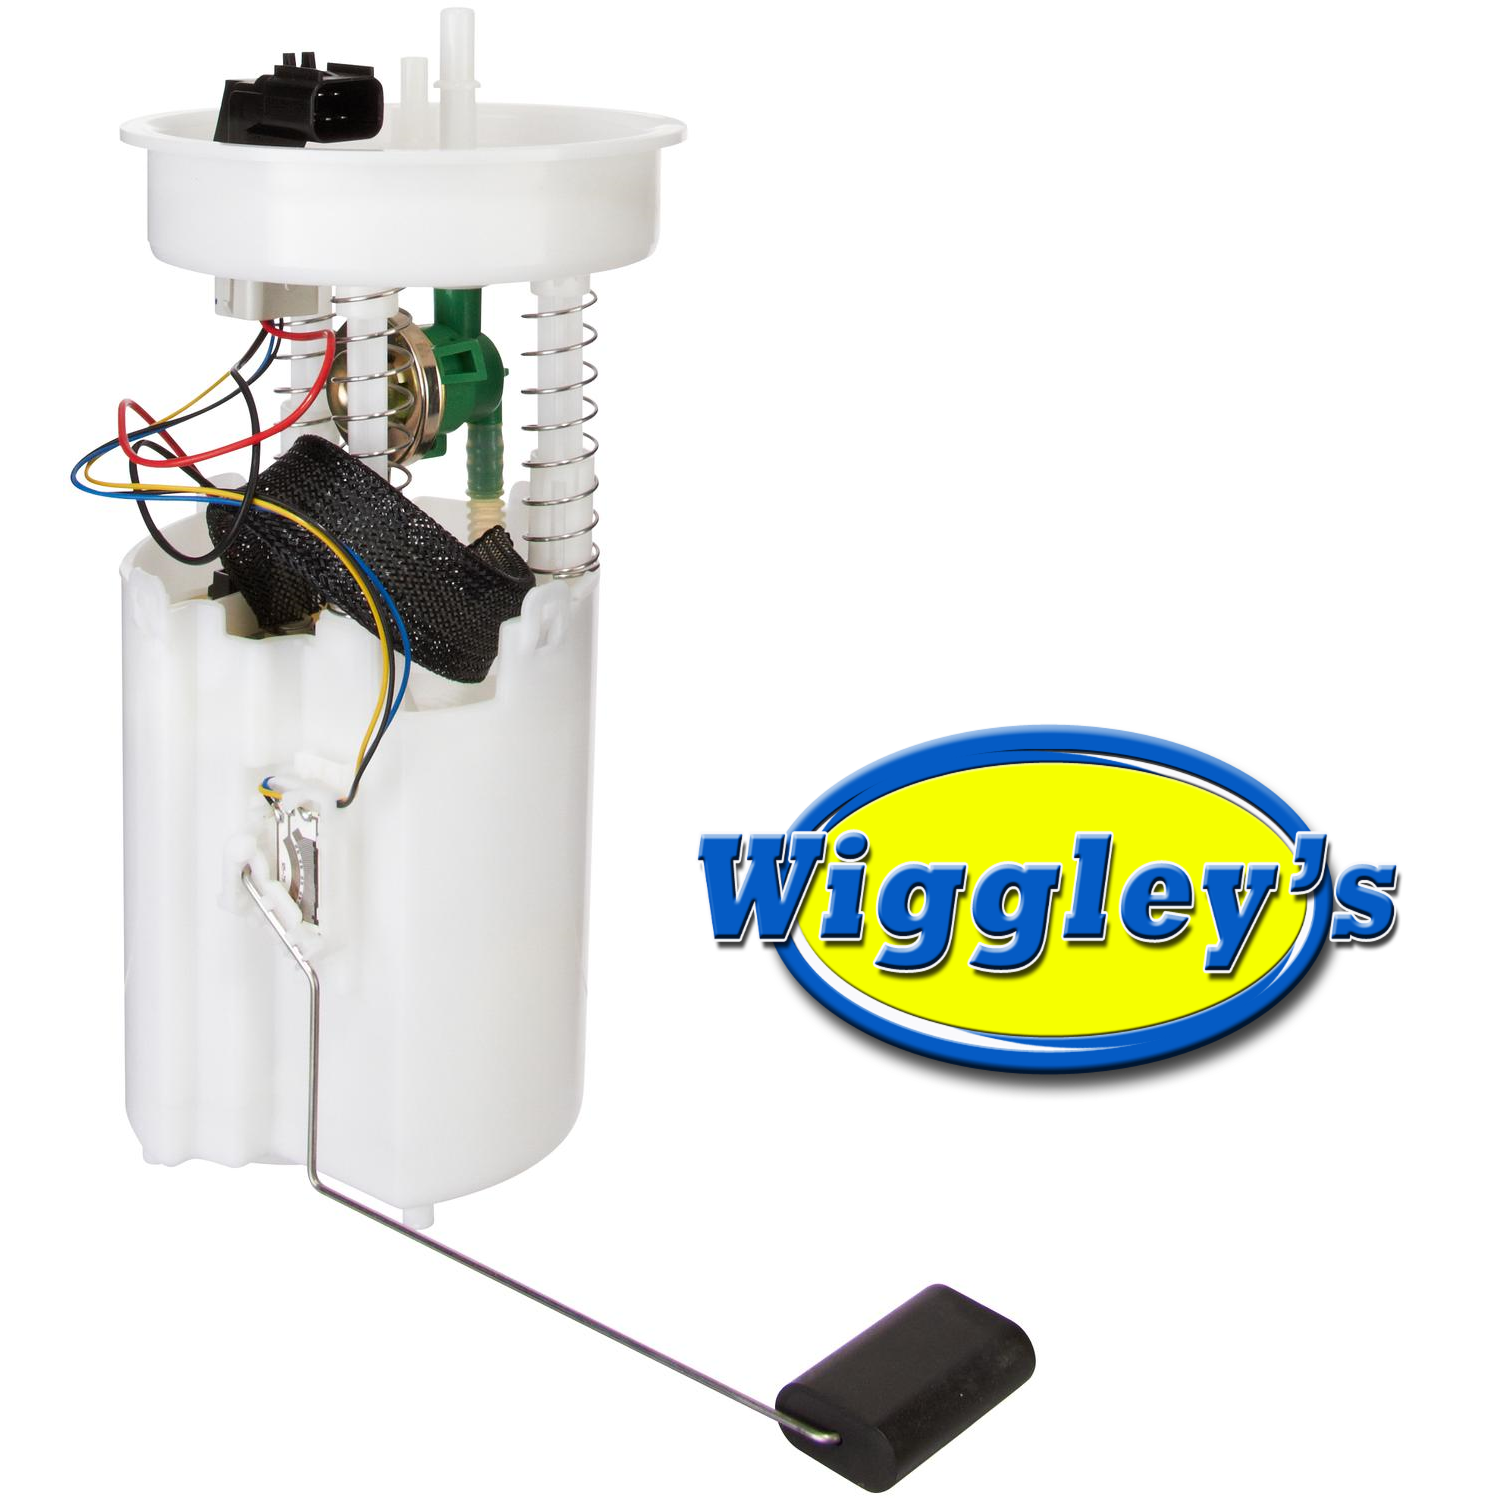 FUEL PUMP MODULE ASSEMBLY 150179 FOR 95 GRAND CHEROKEE 4.0L 5.2L